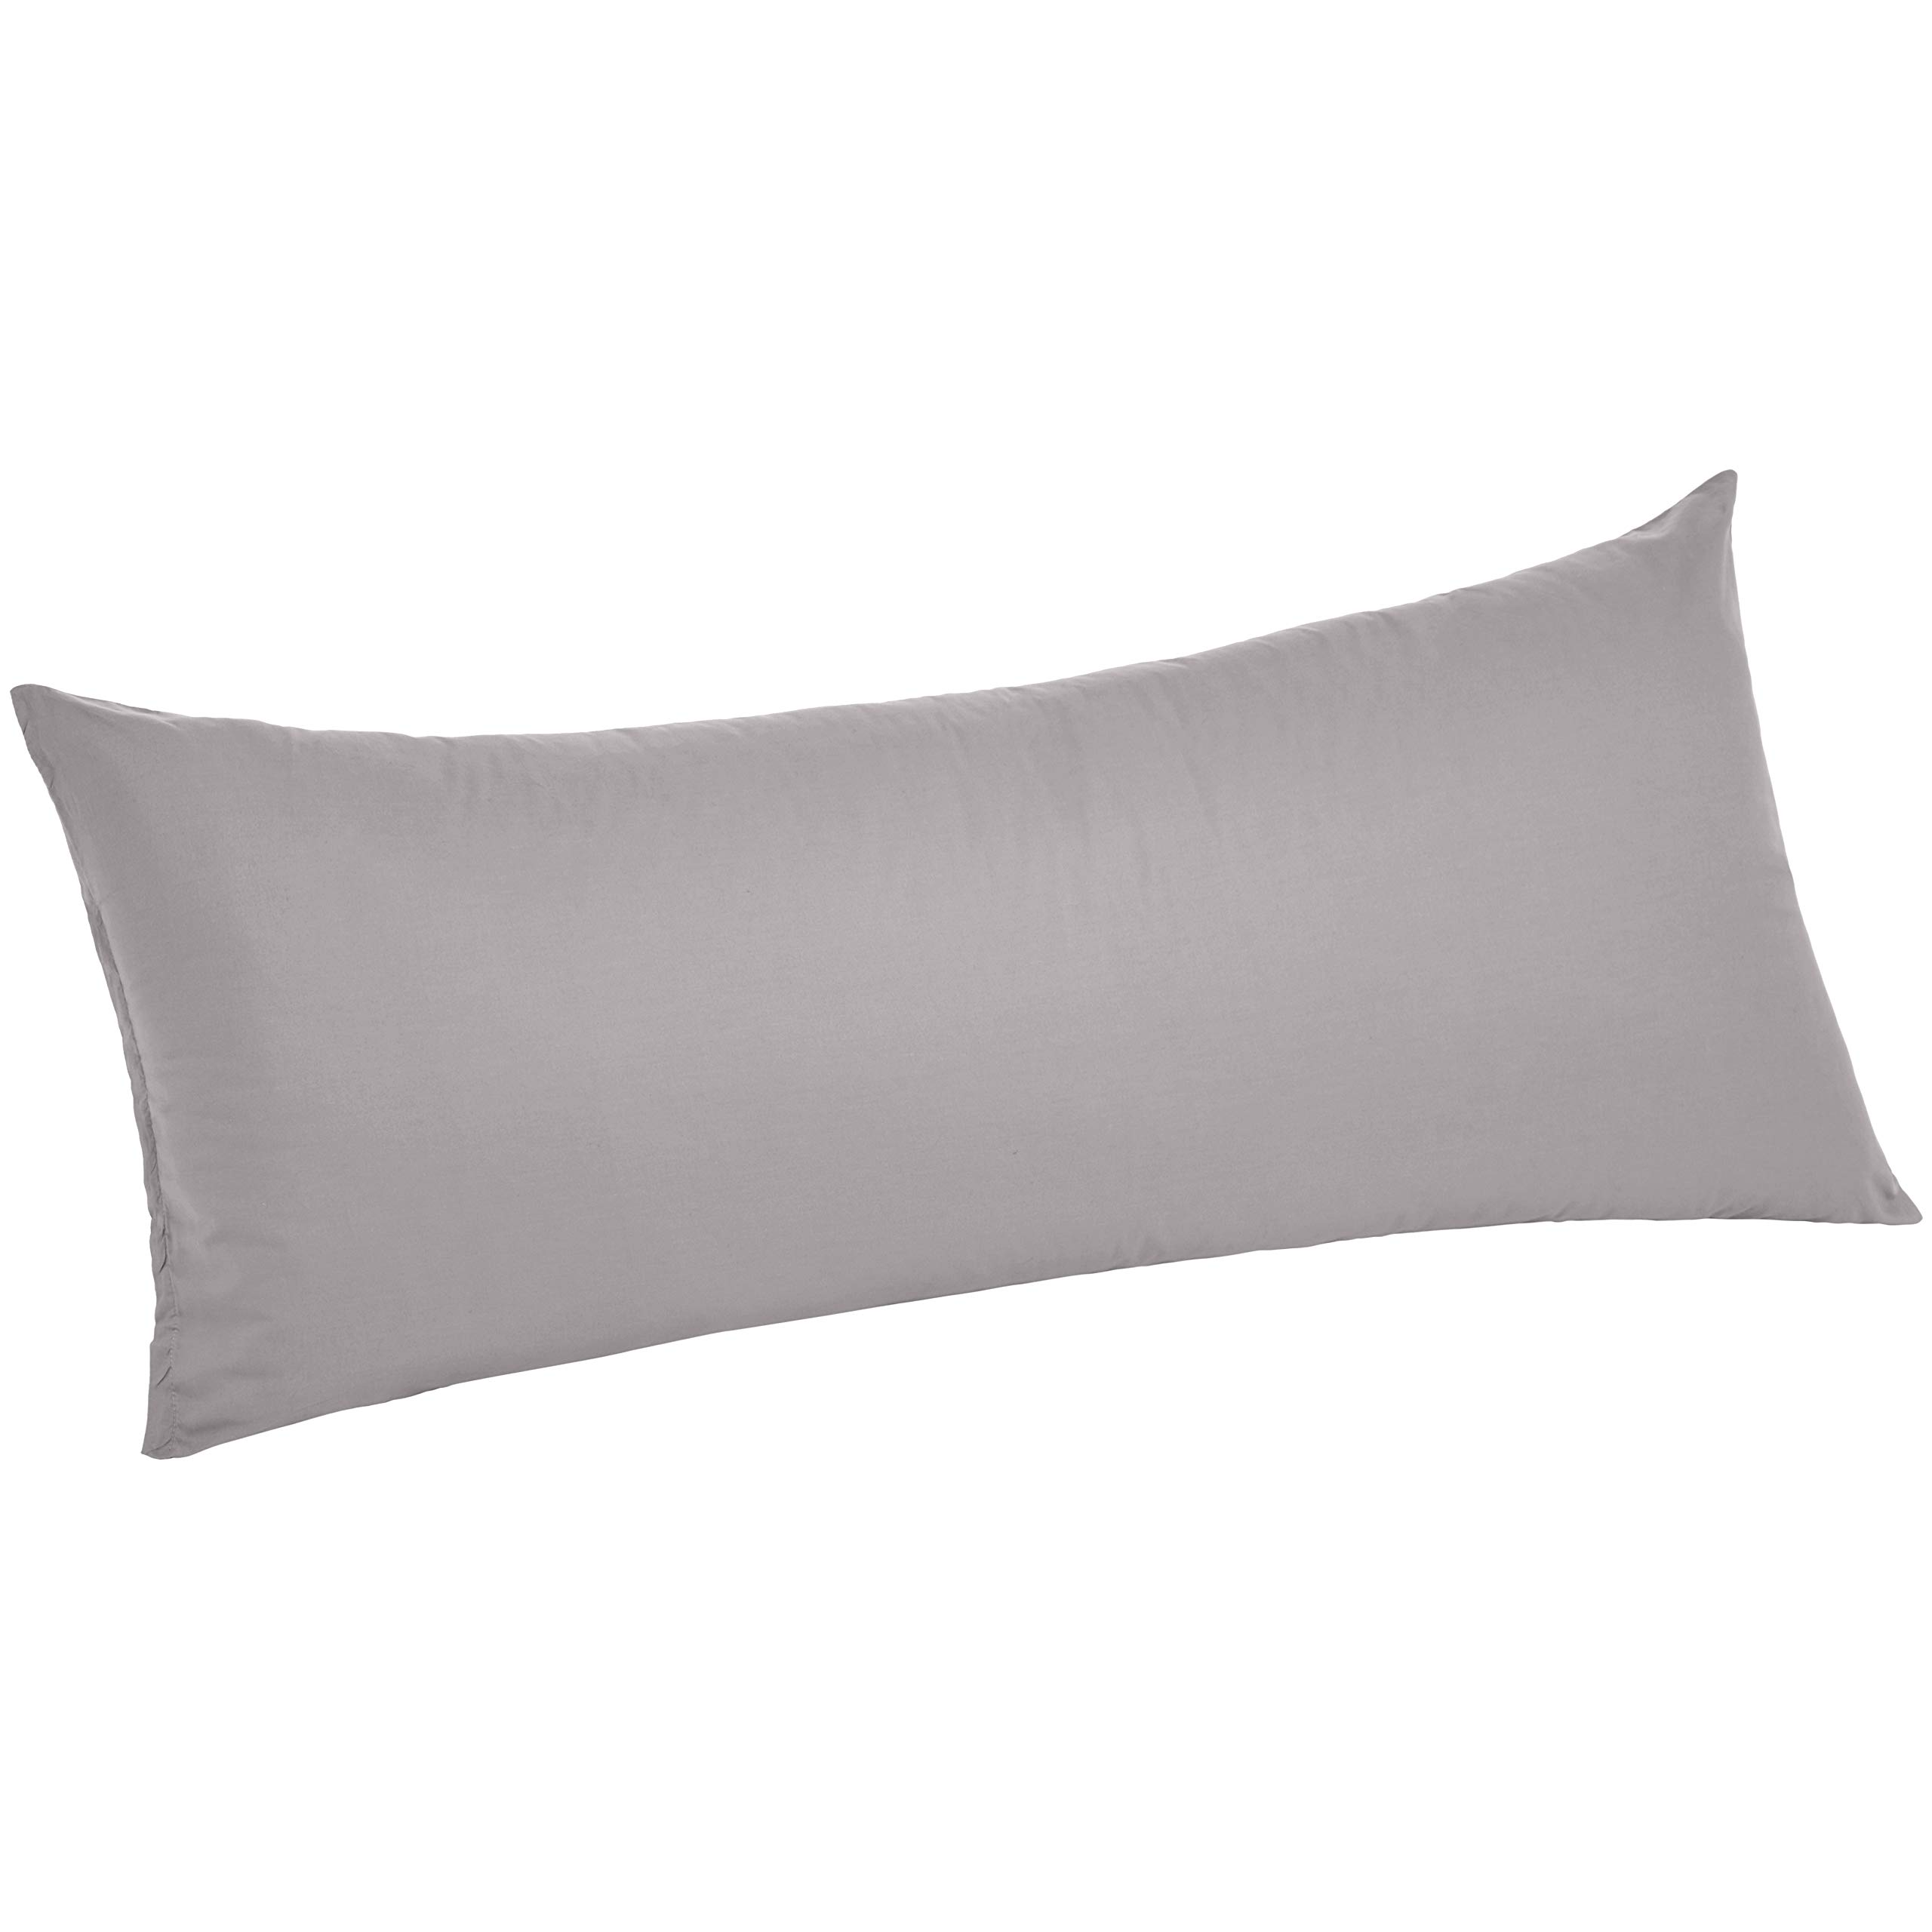 """AmazonBasics Ultra-Soft Body Pillow Cover Pillowcase, Breathable, Easy to Wash, 55"""" x 21"""", Graphite Grey"""